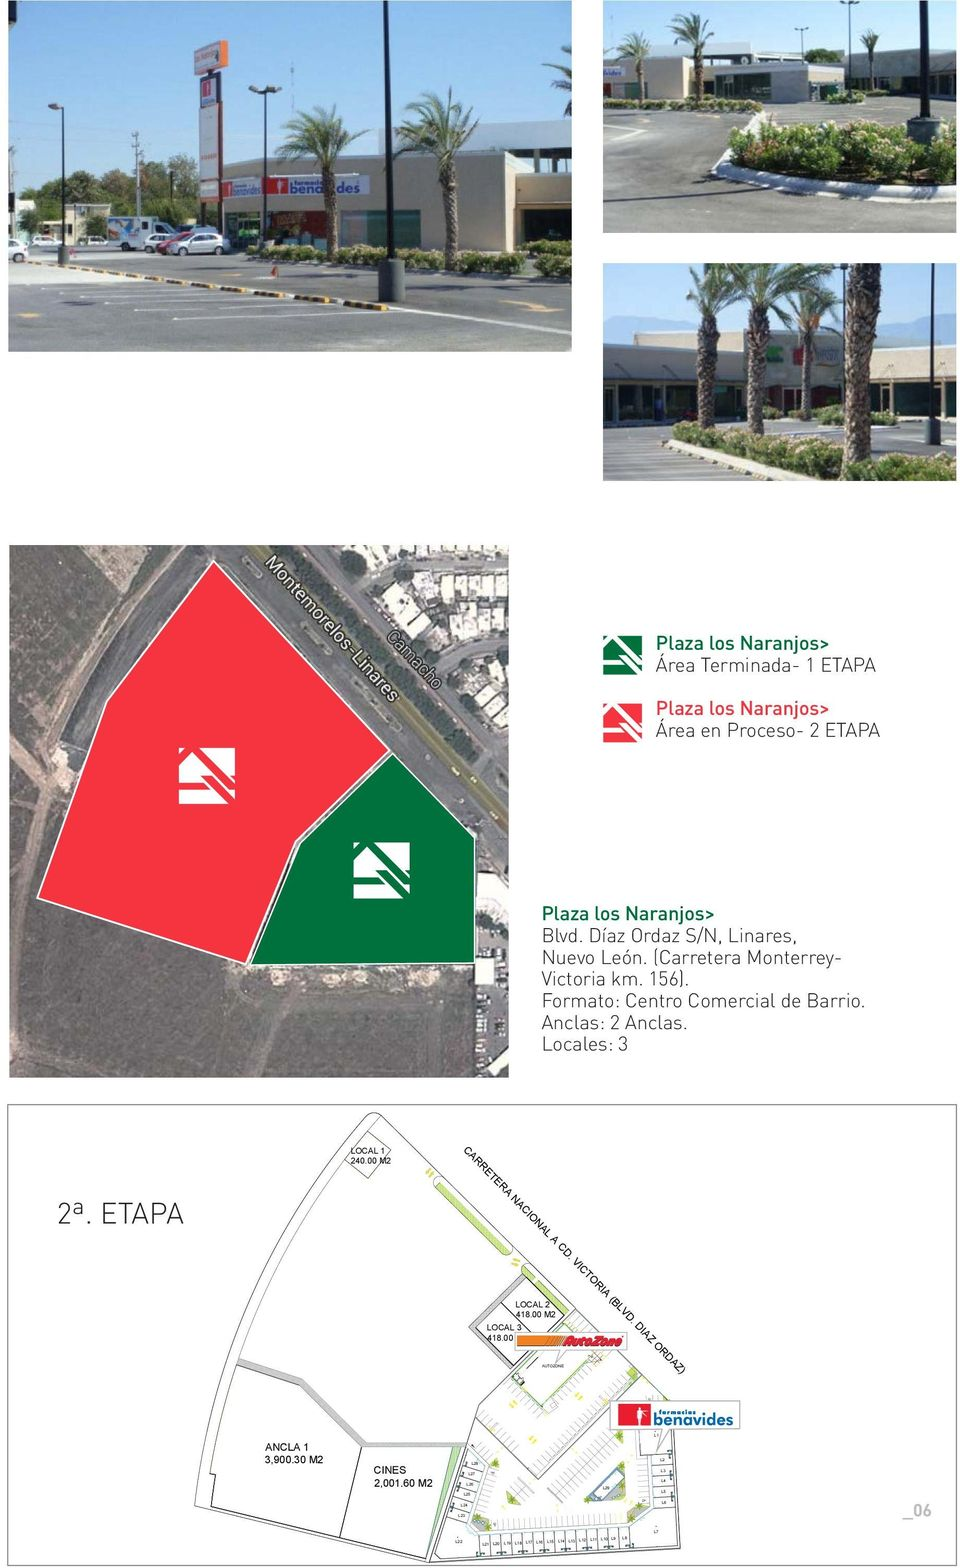 VICTORIA (BLVD. DIAZ ORDAZ) 2ª. ETAPA PRODUCED BY AN AUTODESK EDUCATIONAL PRODUCT LOCAL 3 418.00 M2 LOCAL 2 418.